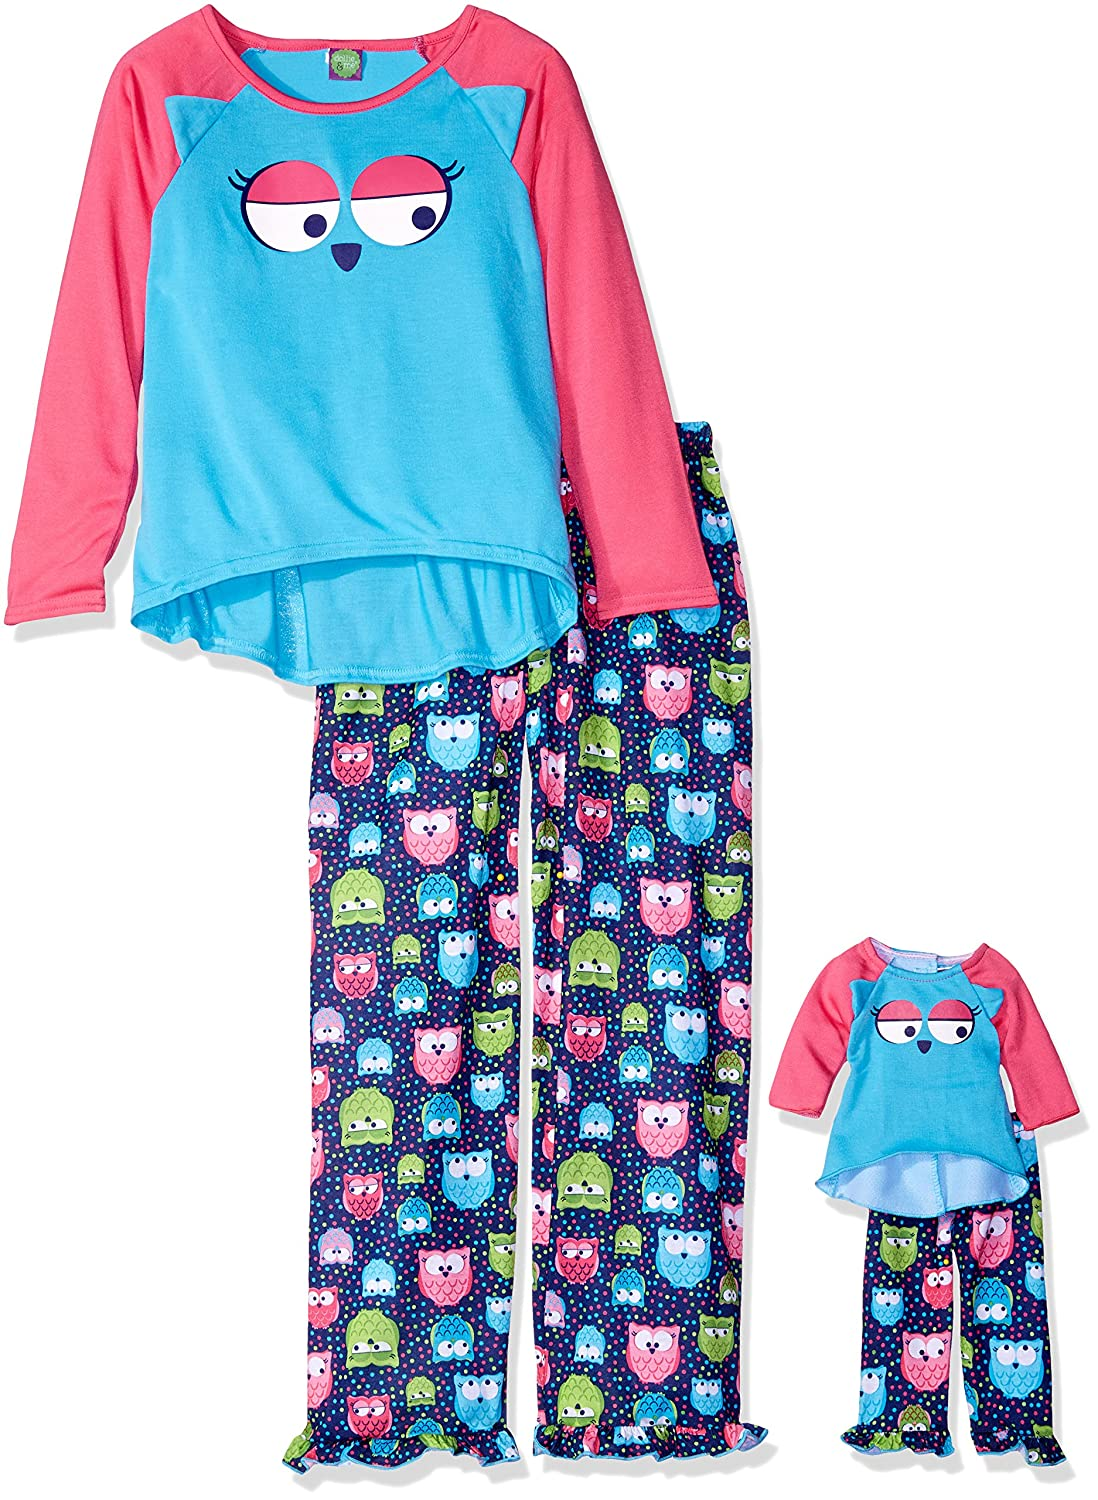 Dollie /& Me Girls 2 Piece Animal Face Sleepwear Set with Matching 18 Inch Doll Outfit